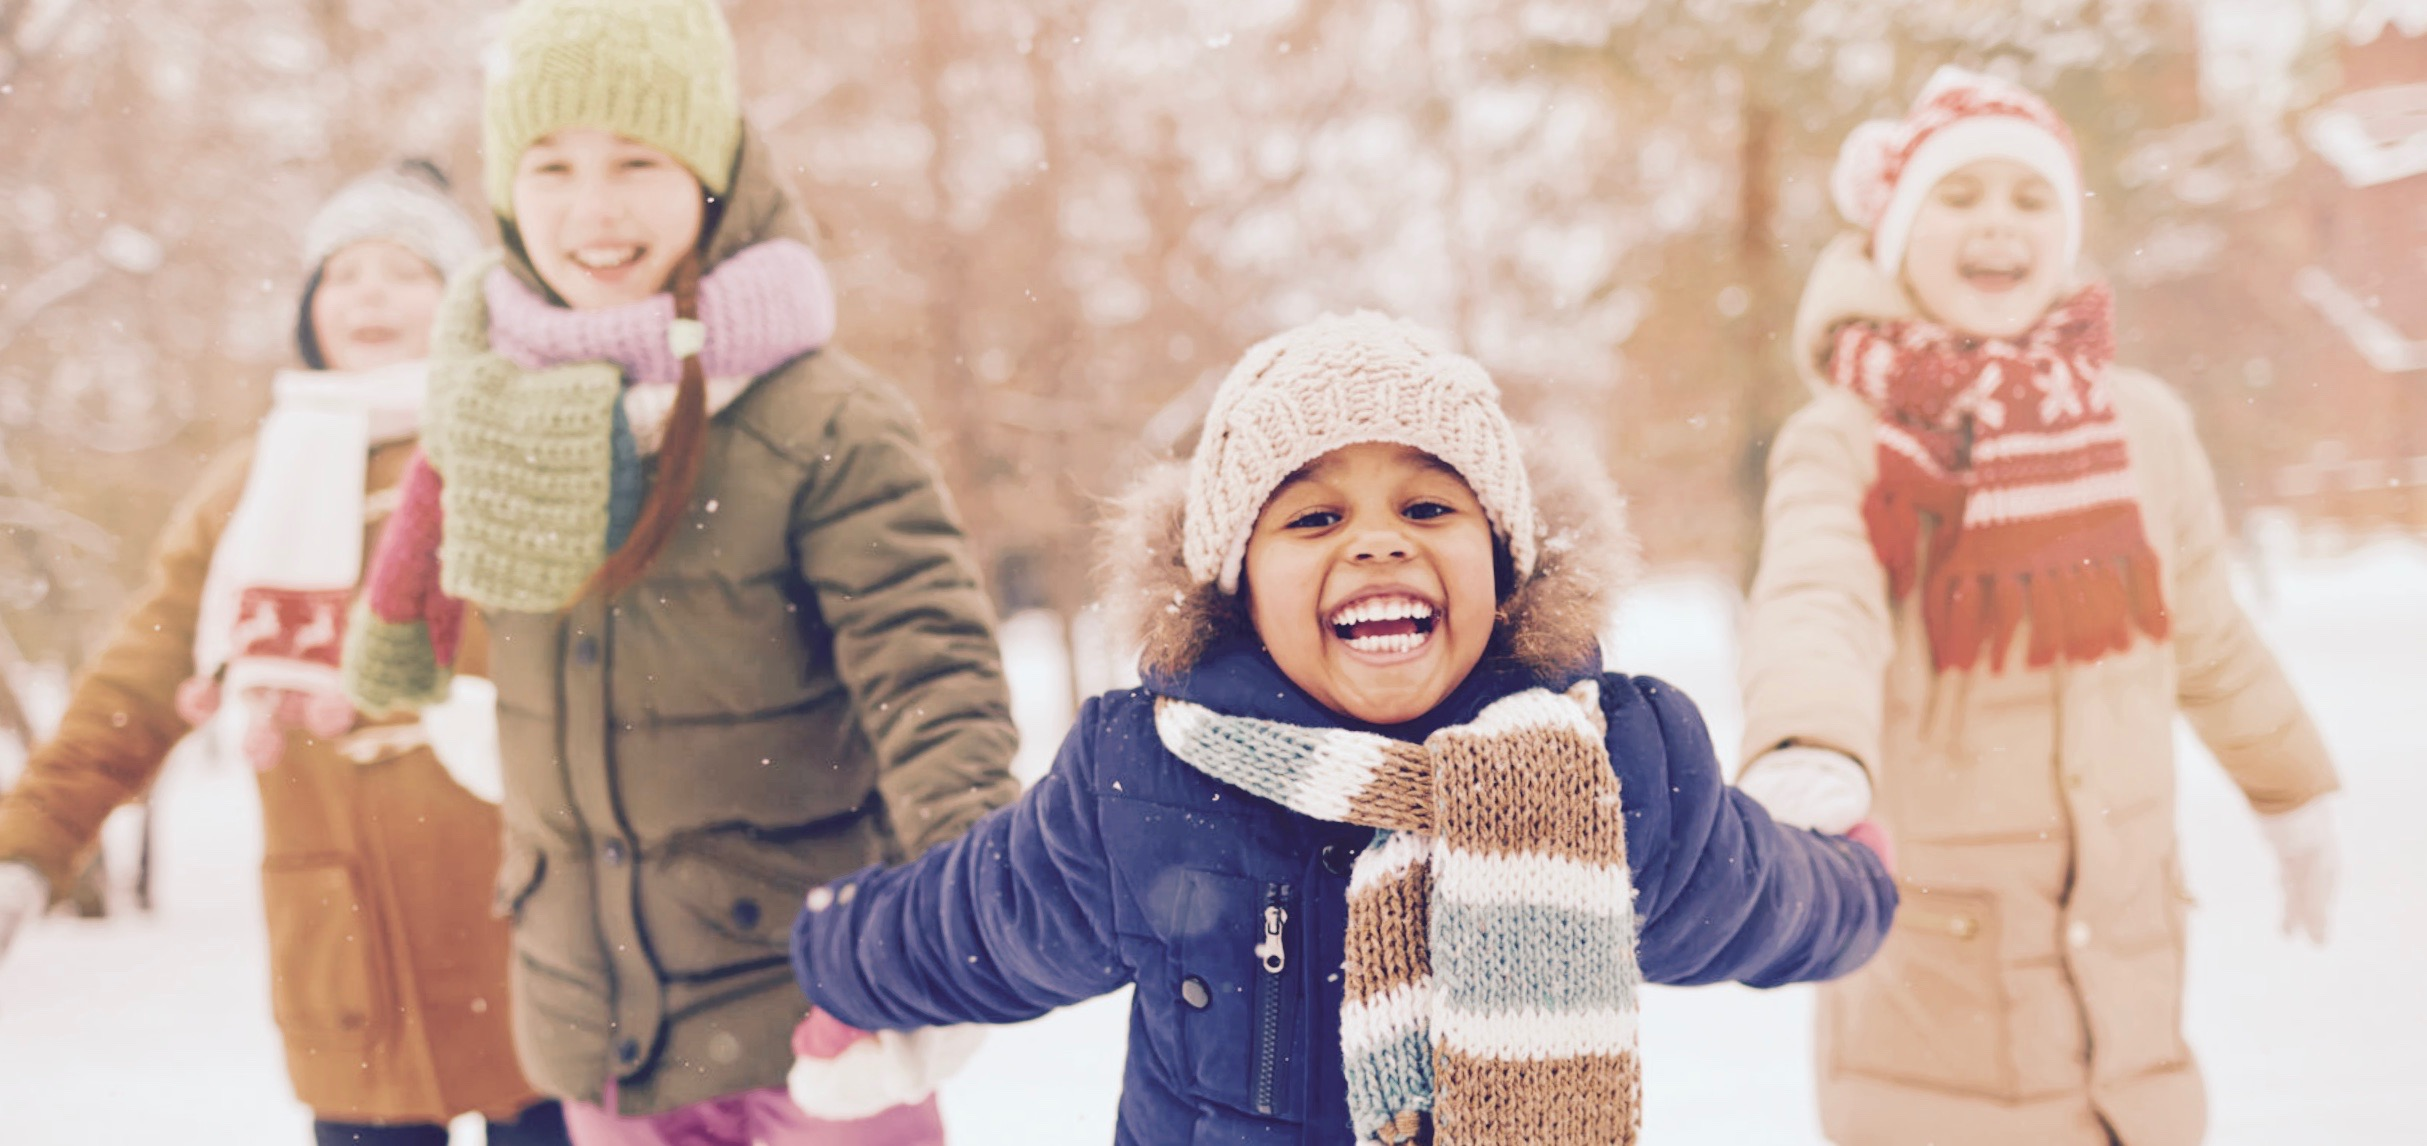 winter outdoor learning activities for kids